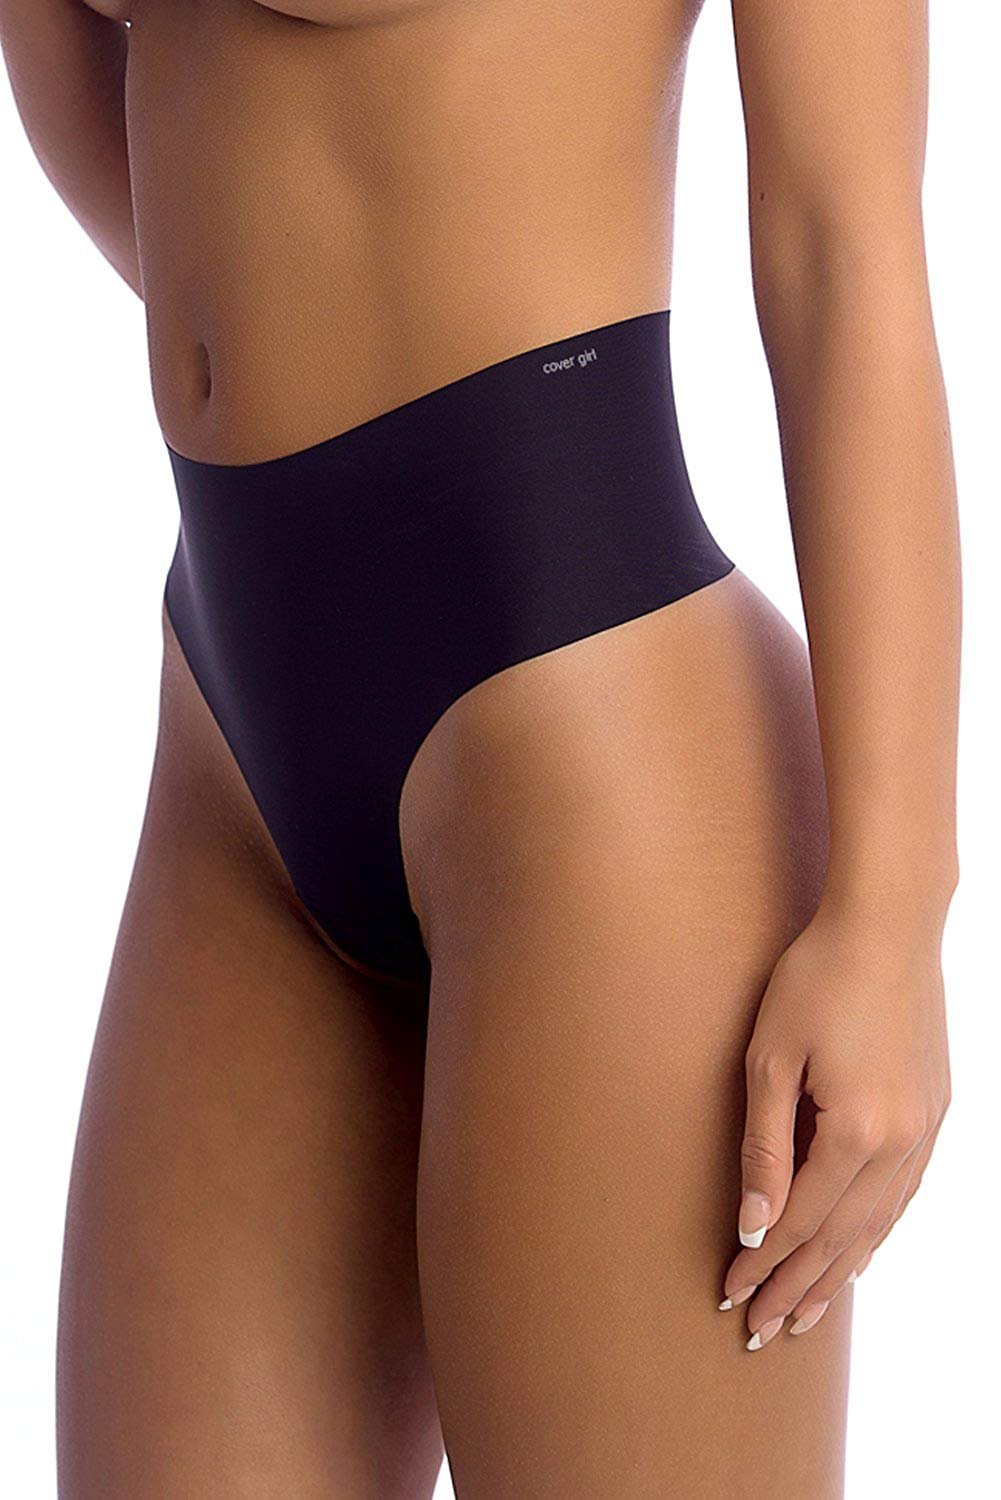 f85899f2a332e Get Quotations · Cover Girl Thong Shapewear Seamless High Waisted Underwear  Breathable Tummy Control Shaping Thong Panties